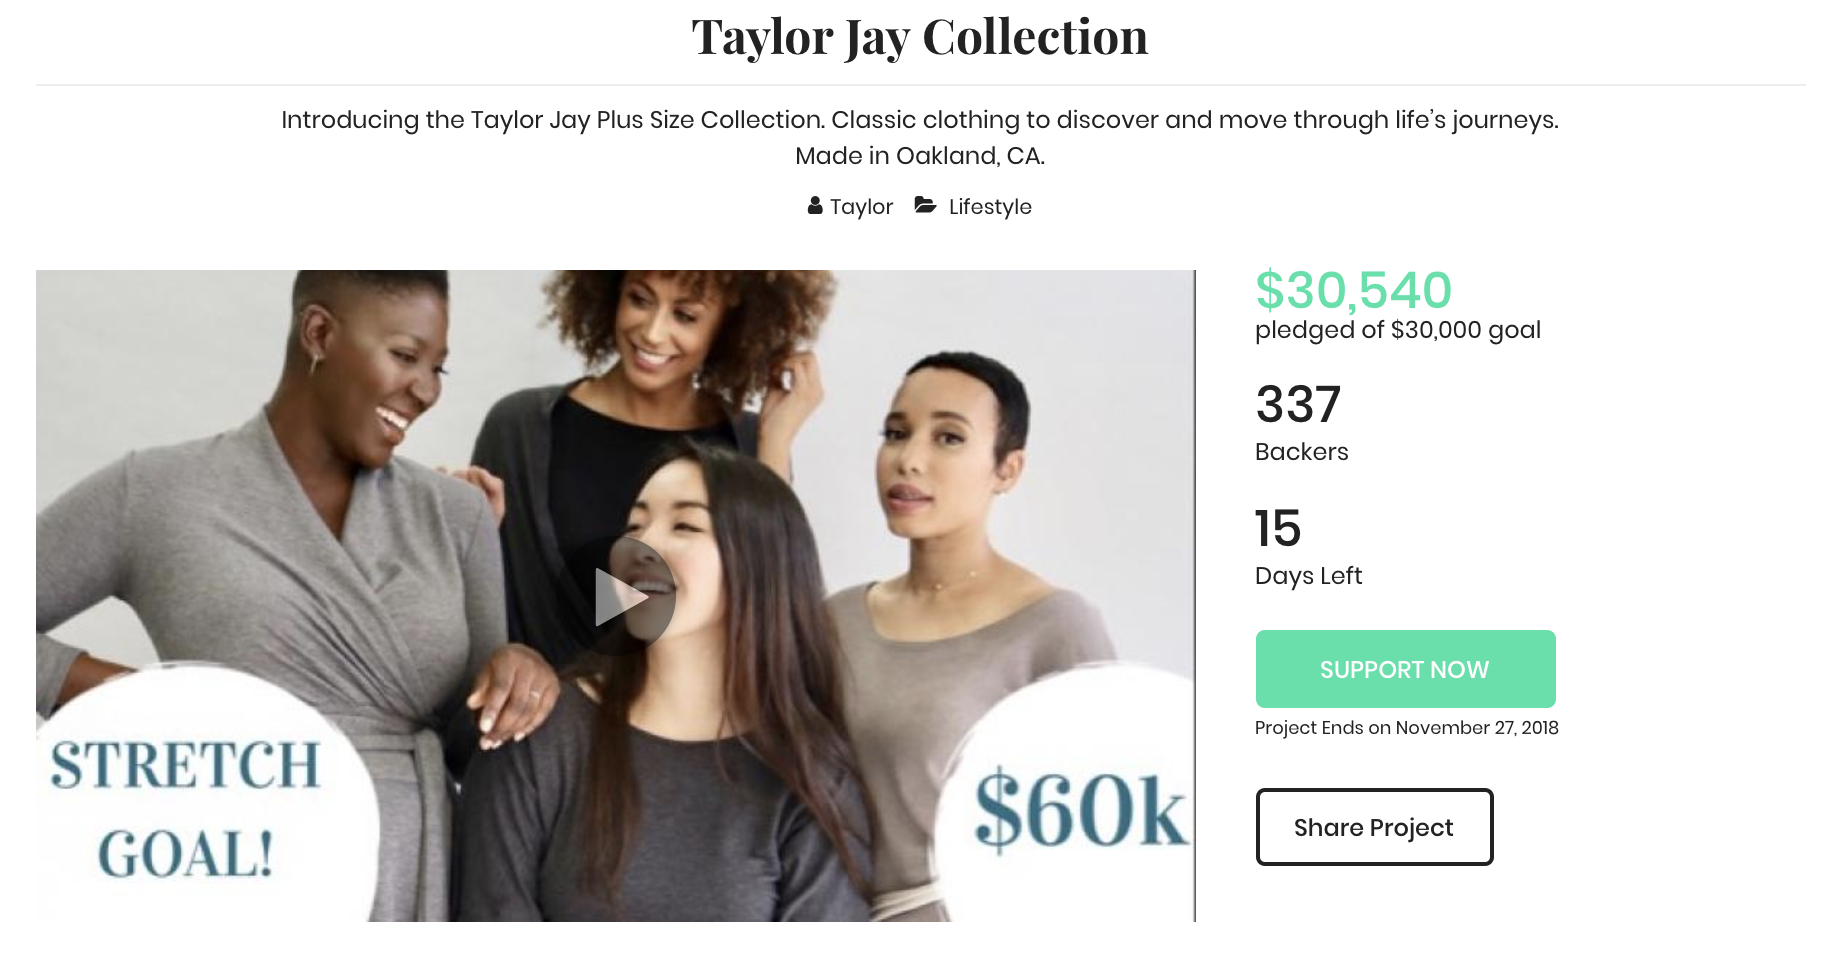 Taylor Jay is the Founder & CEO of  Taylor Jay Collection , a women's apparel line out of Oakland, California.